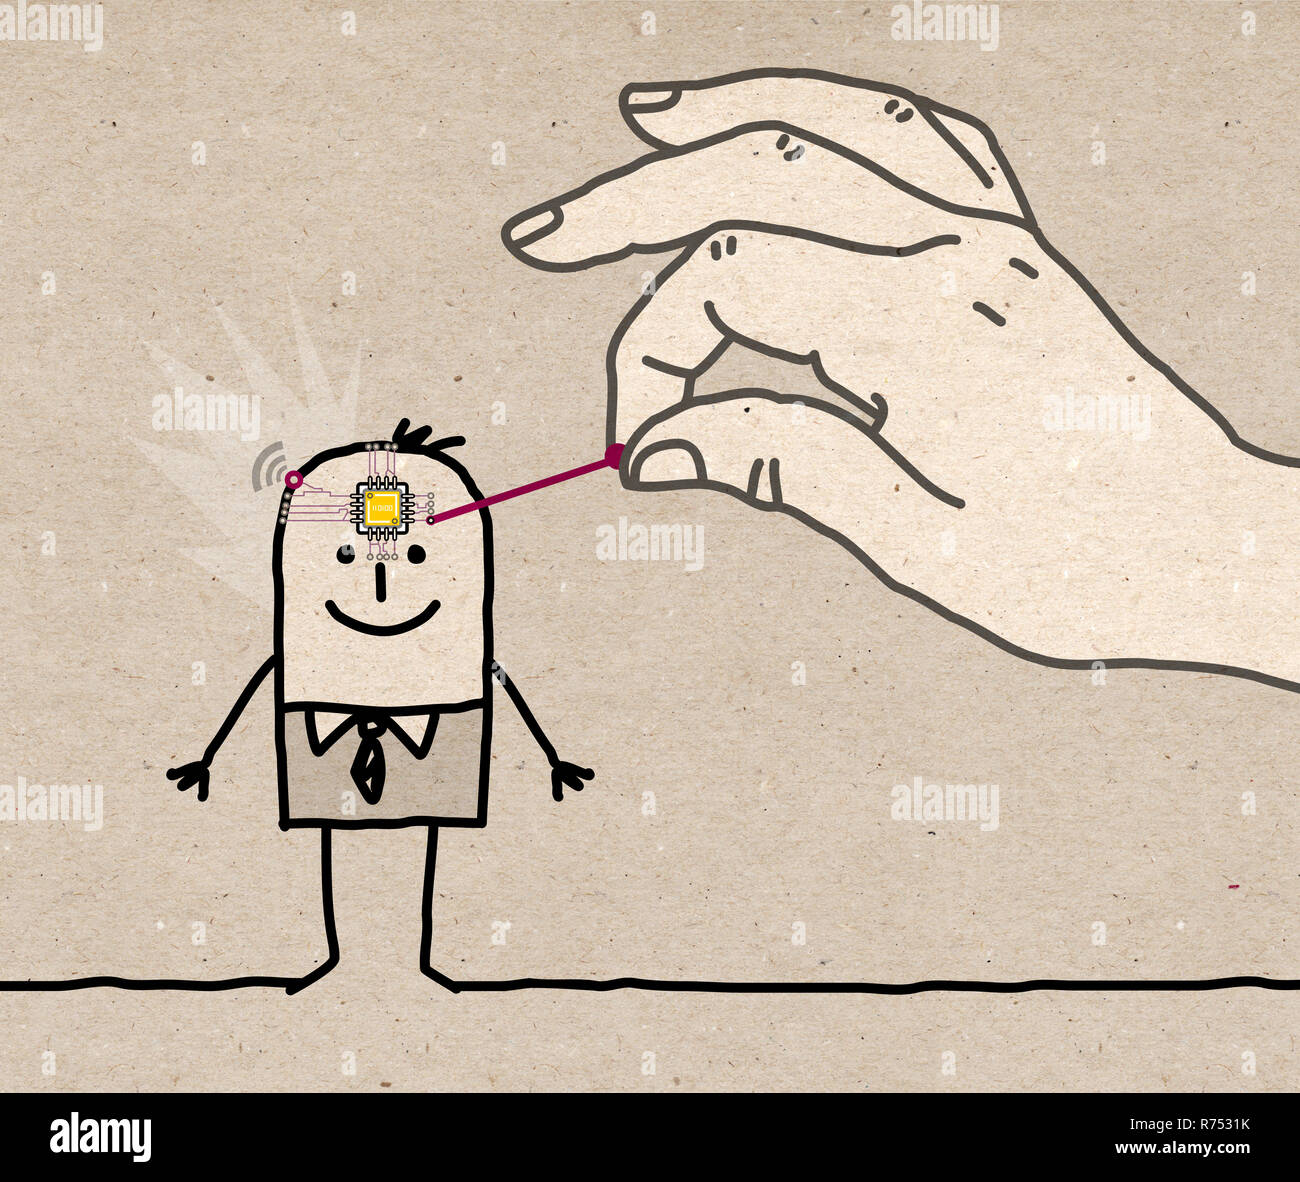 Big Hand Putting a Microchip in a Cartoon Man's Head - illustration on textured brown paper - Stock Image